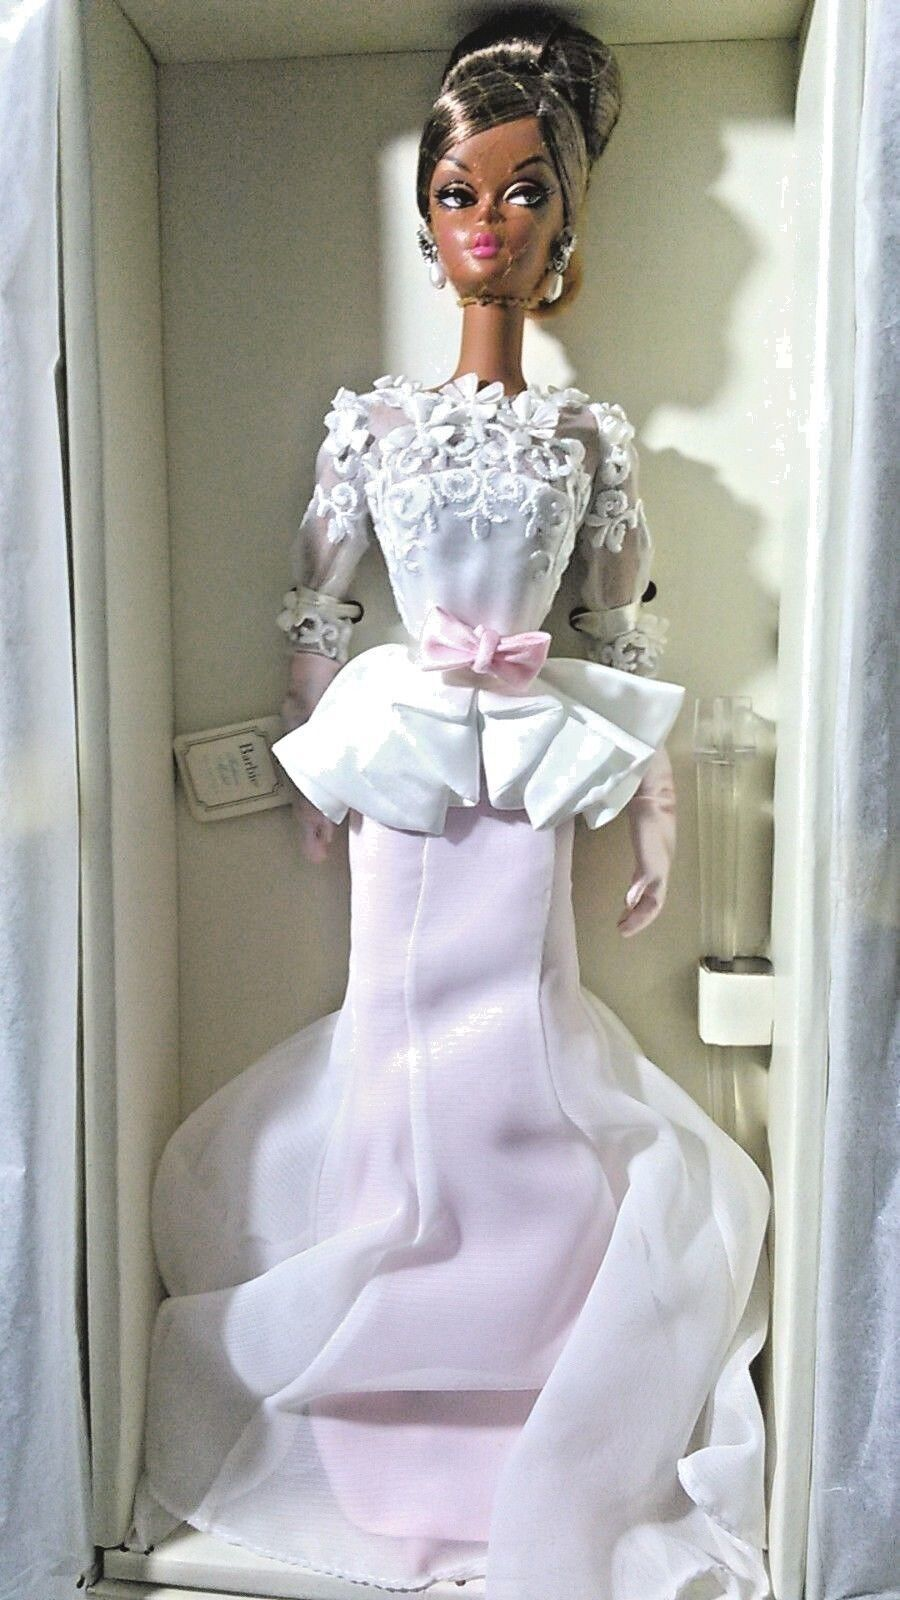 BARBIE EVENING GOWN SILKSTONE NRFB - oro LABEL new model doll collection Mattel